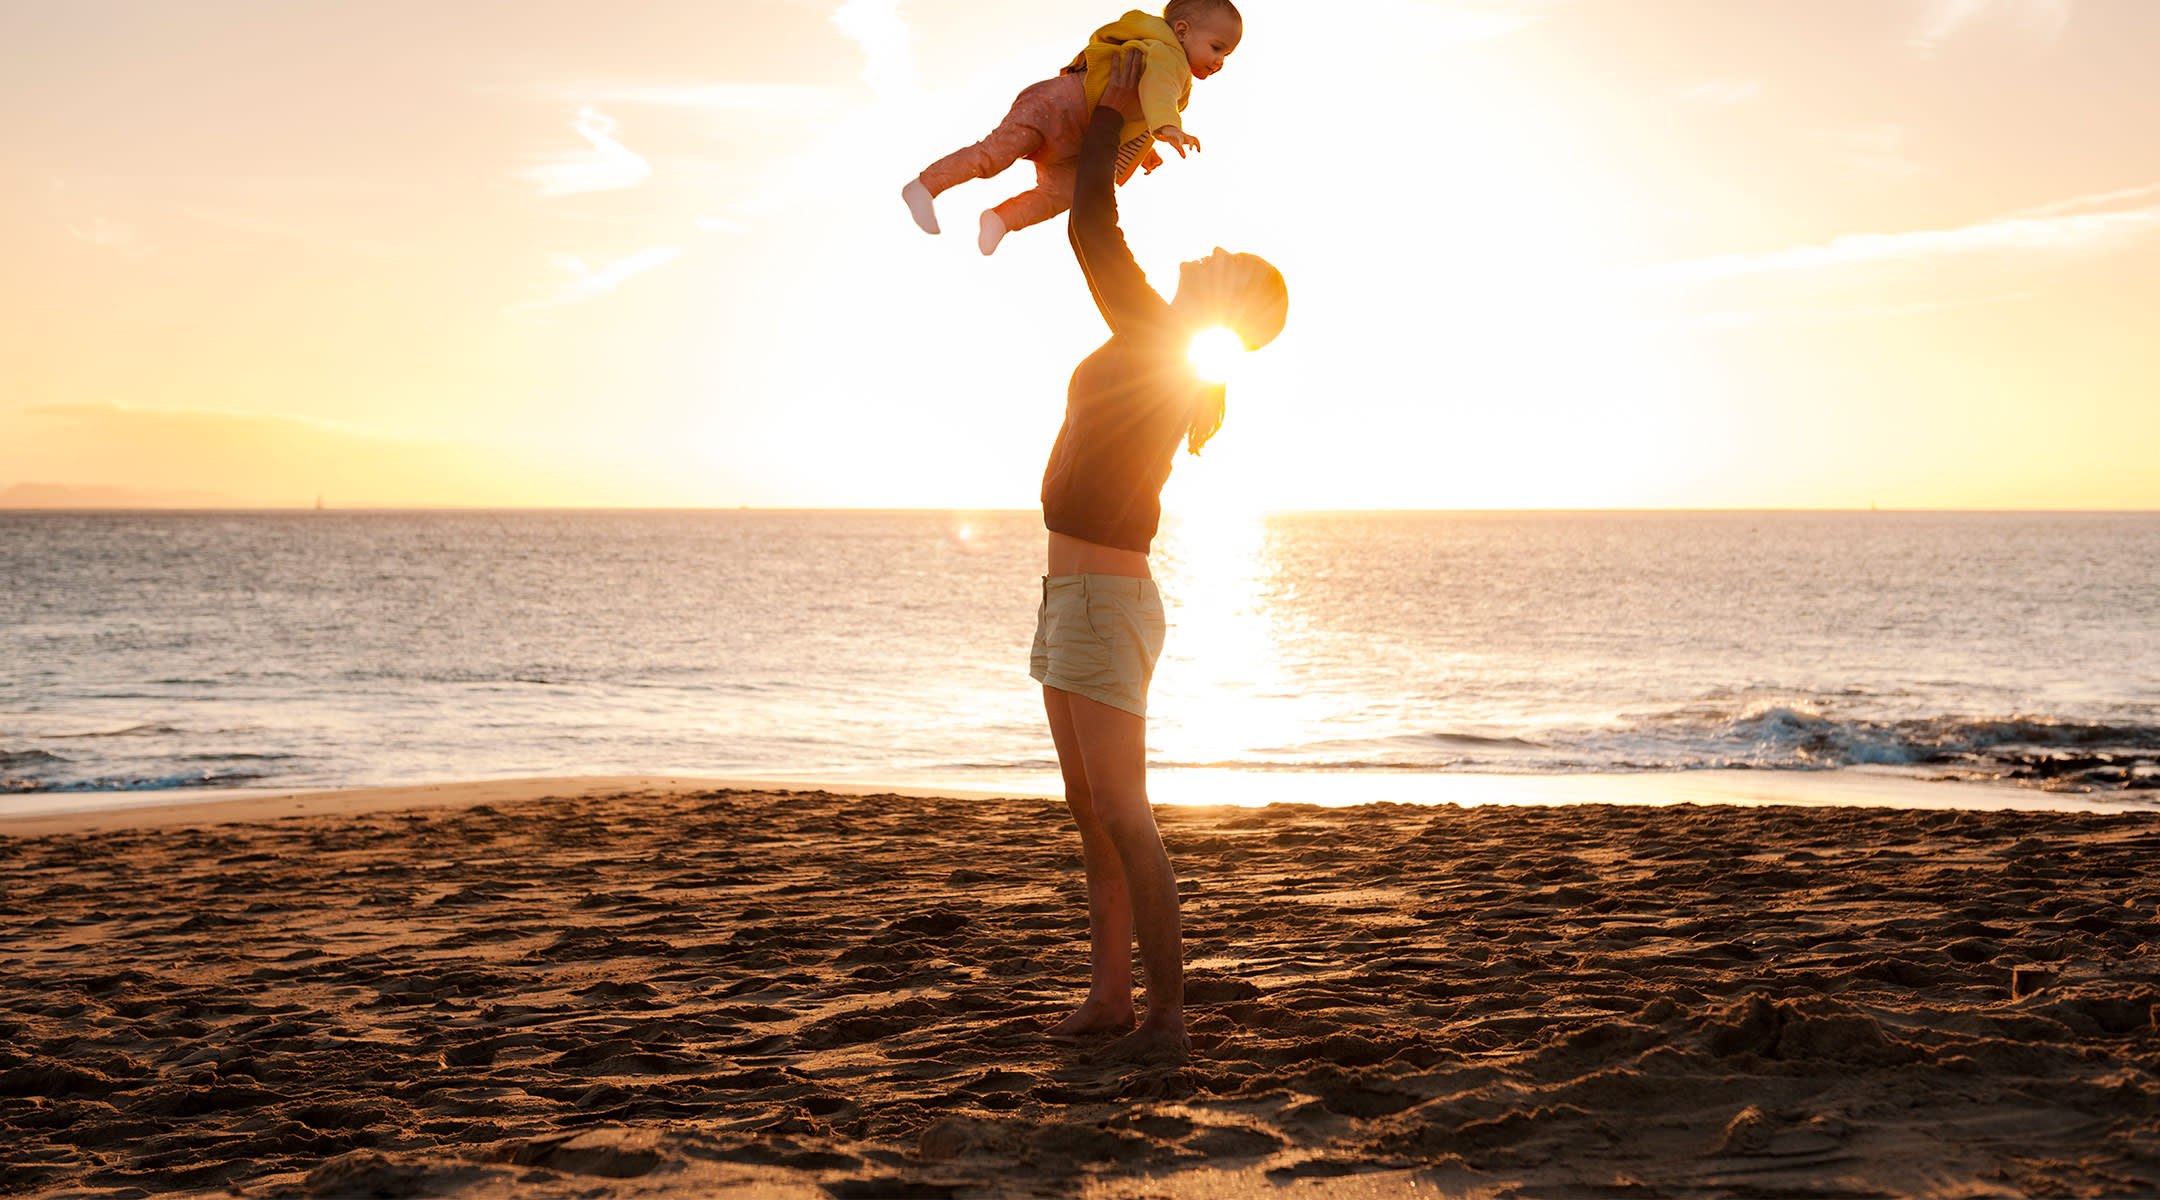 mom traveling with baby, lifting her into the air at the beach